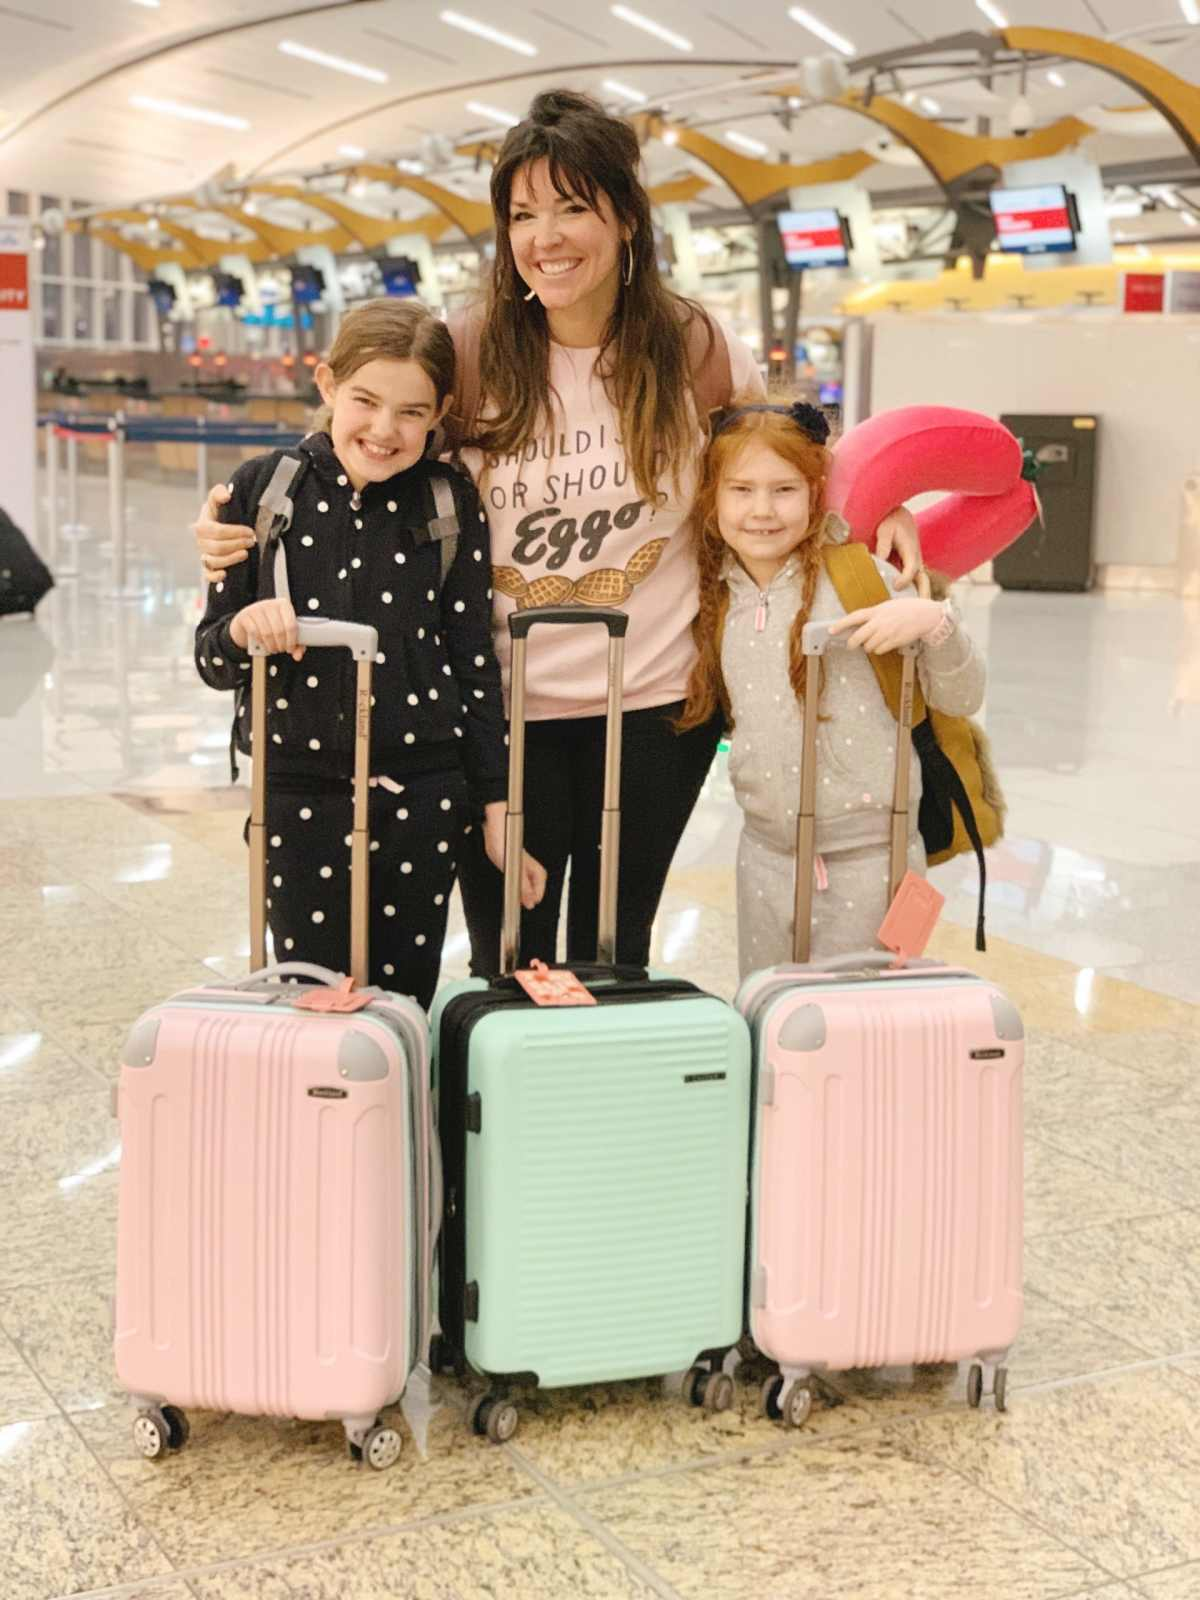 Tips for long plane rides with kids